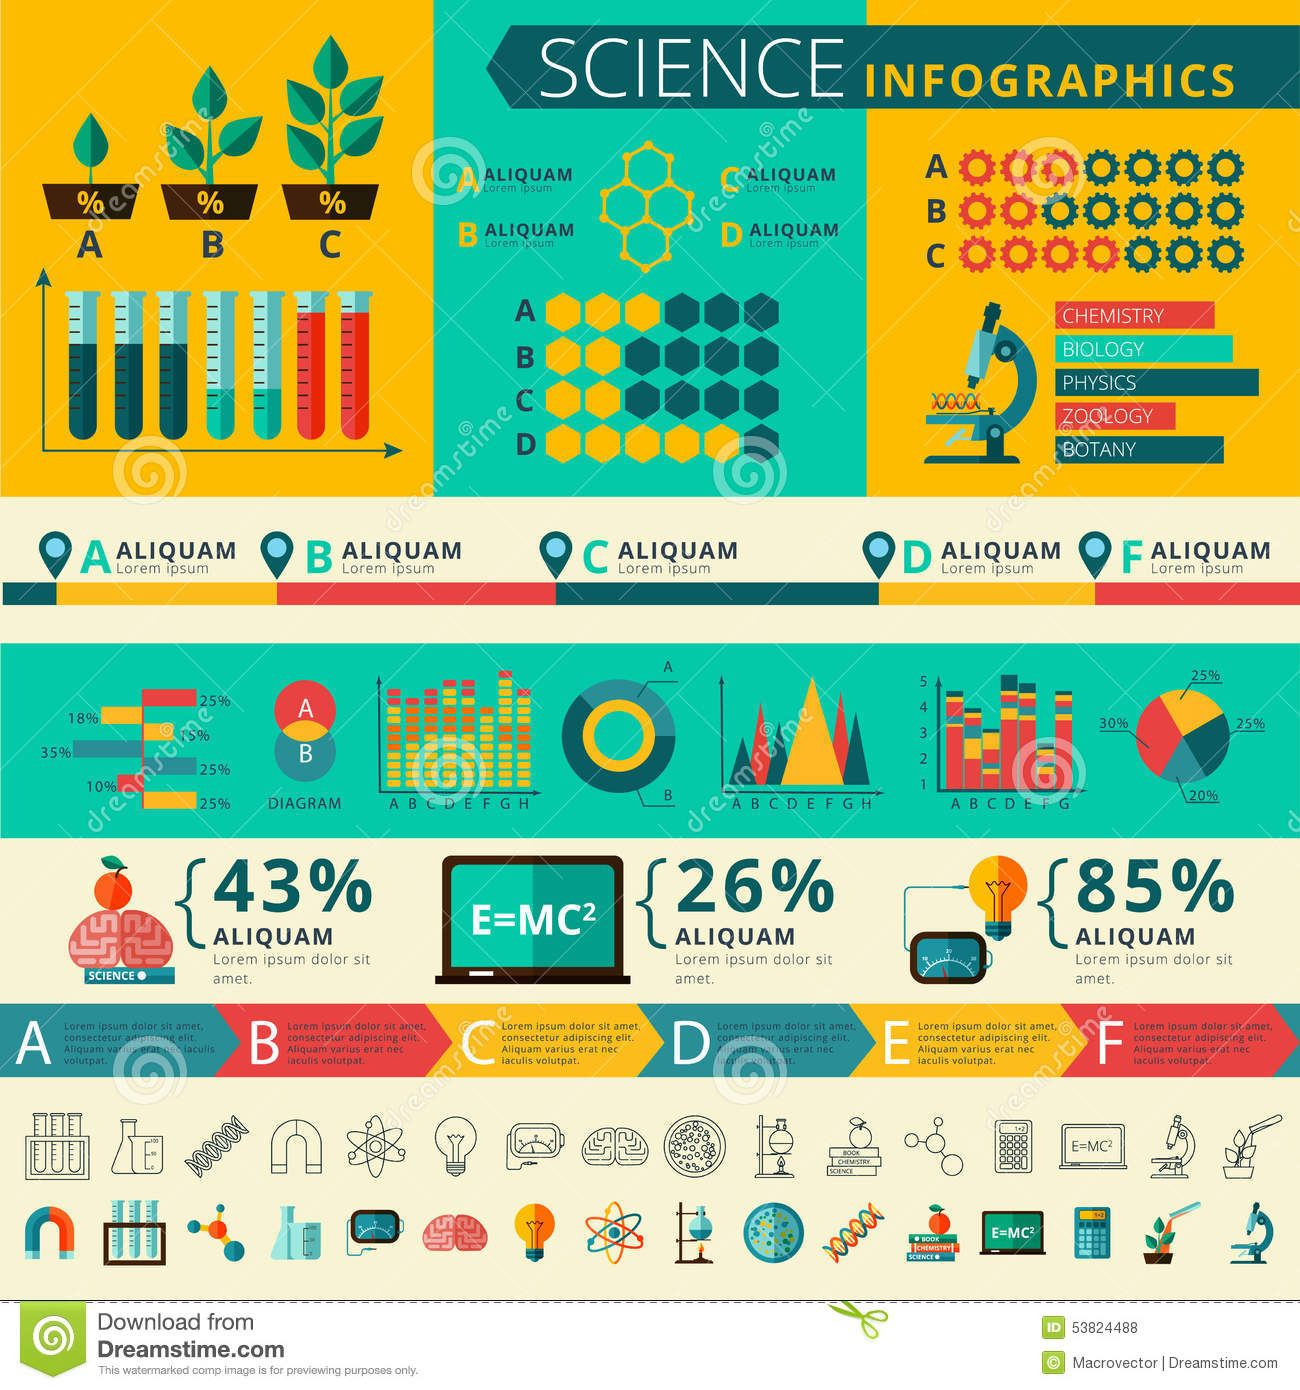 Pin by Brooke Hall on Infographics | Pinterest ...